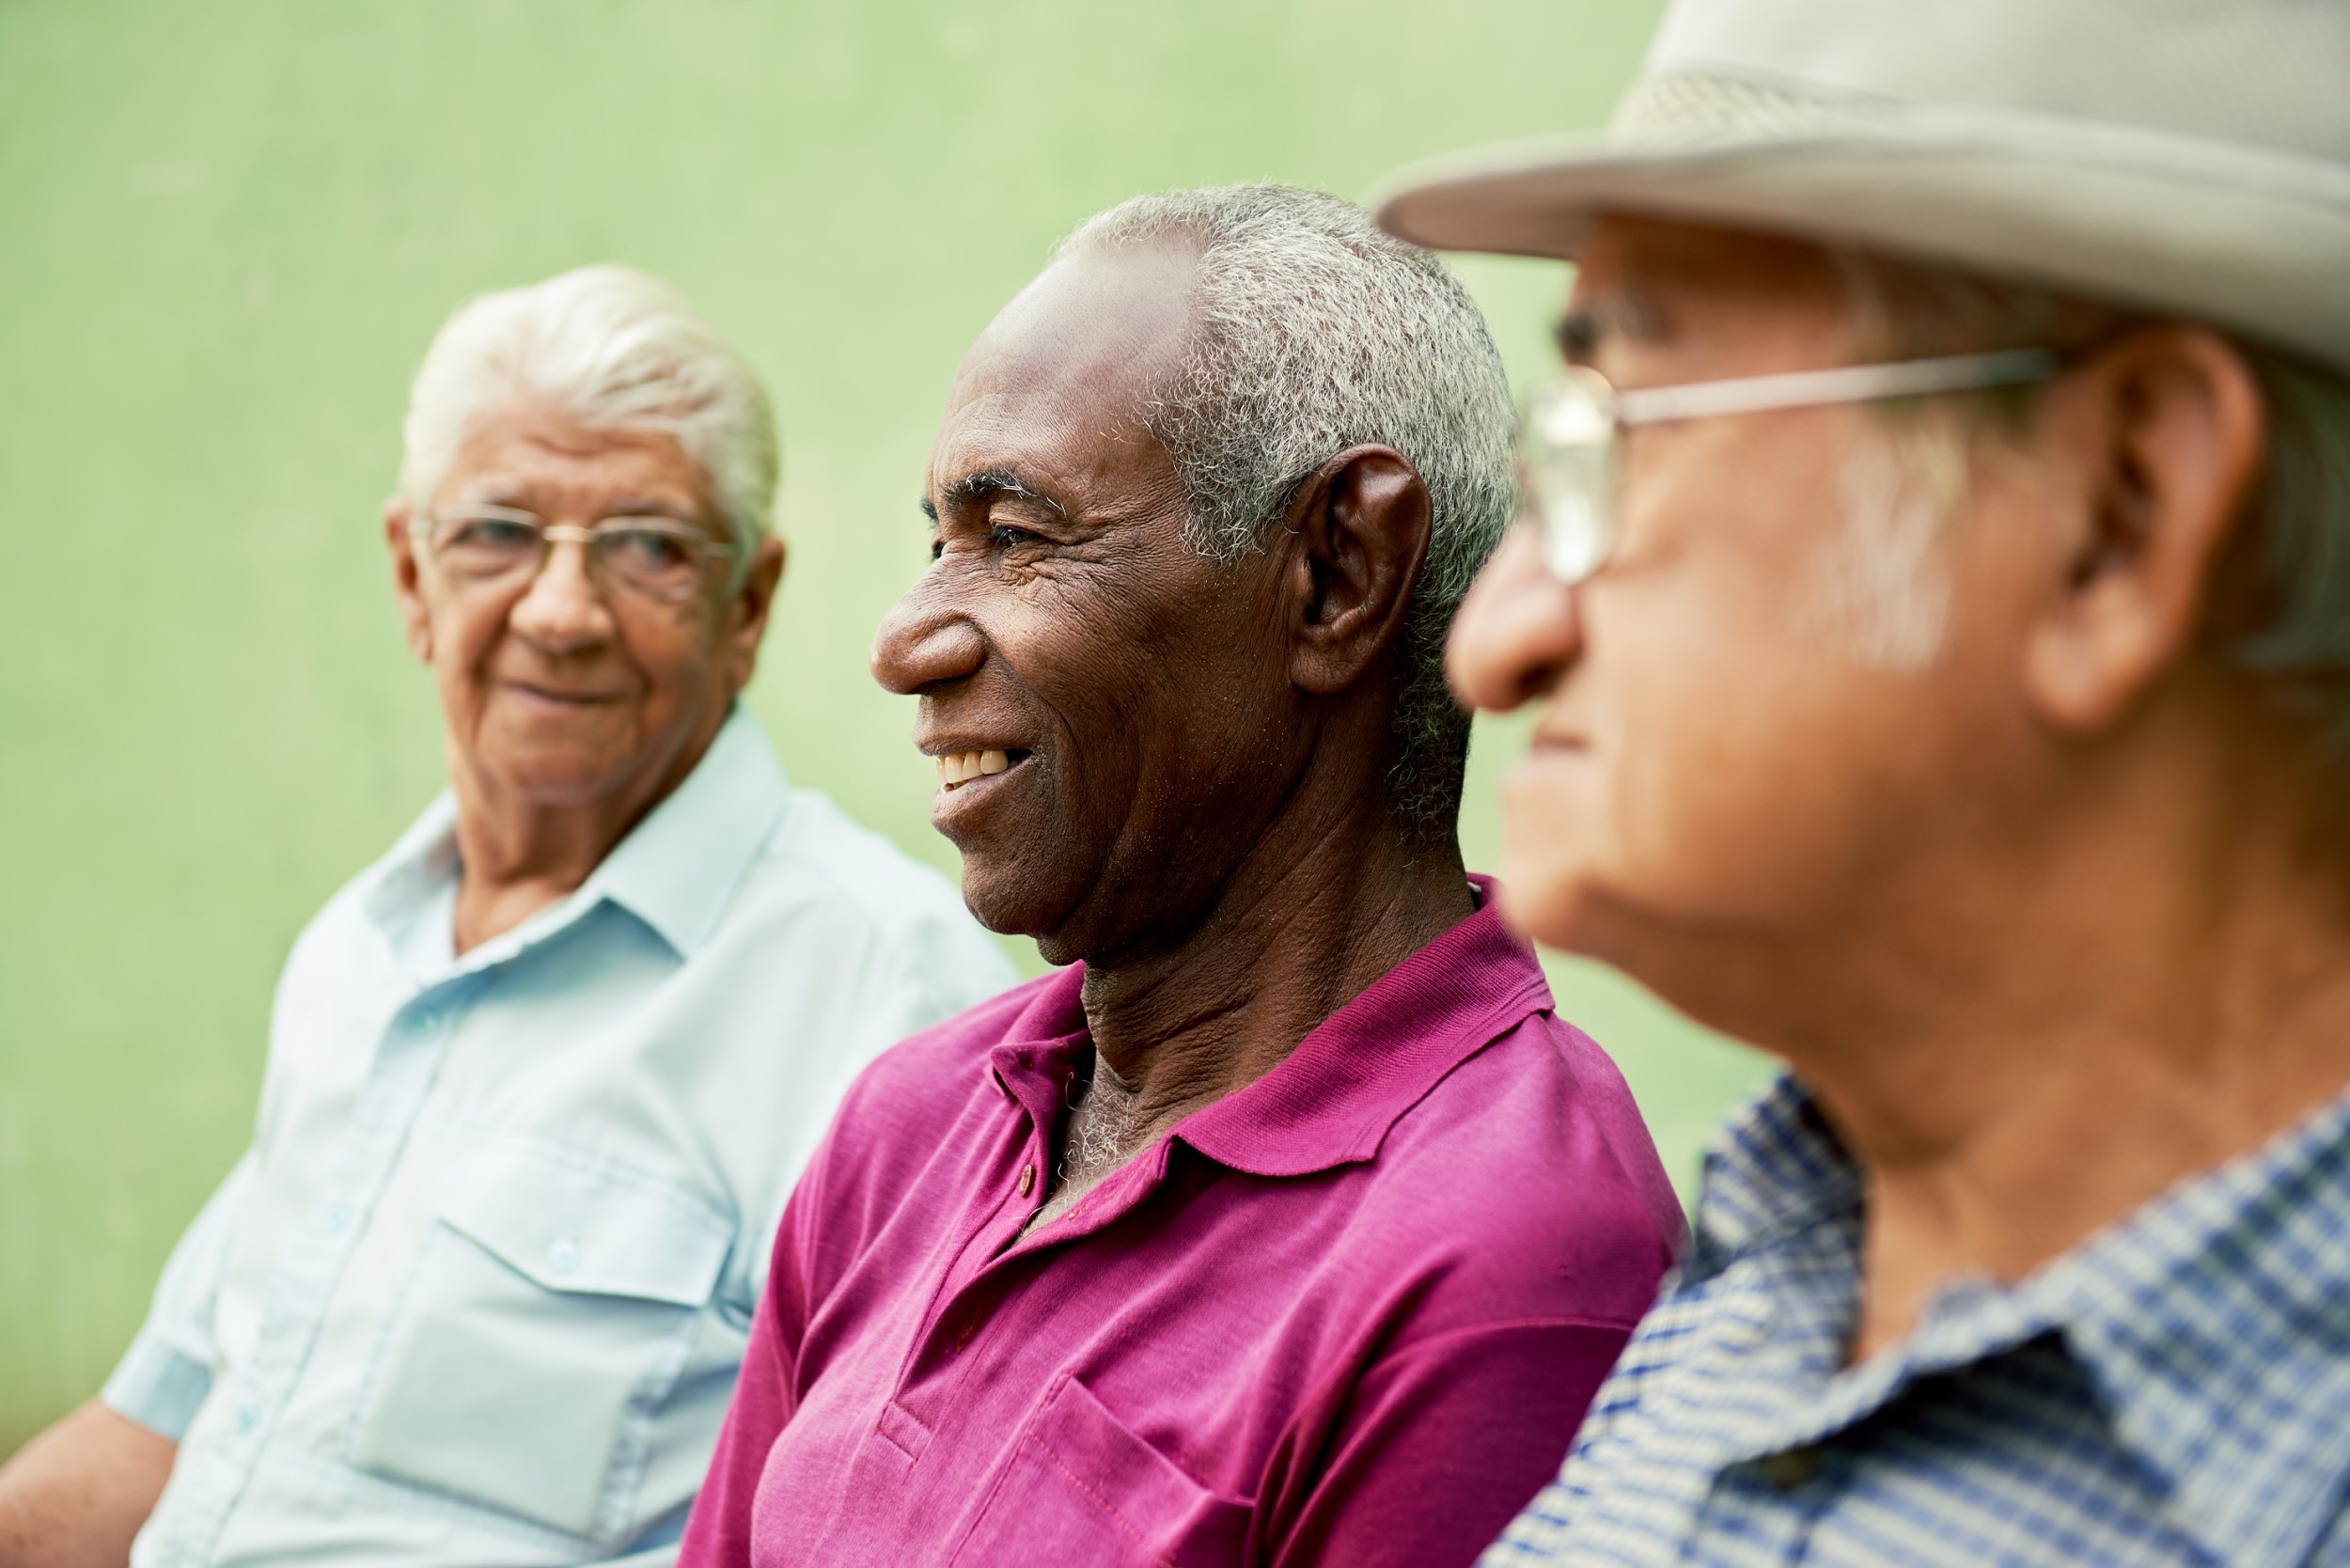 Challenges and Suggestions for Elderly Care